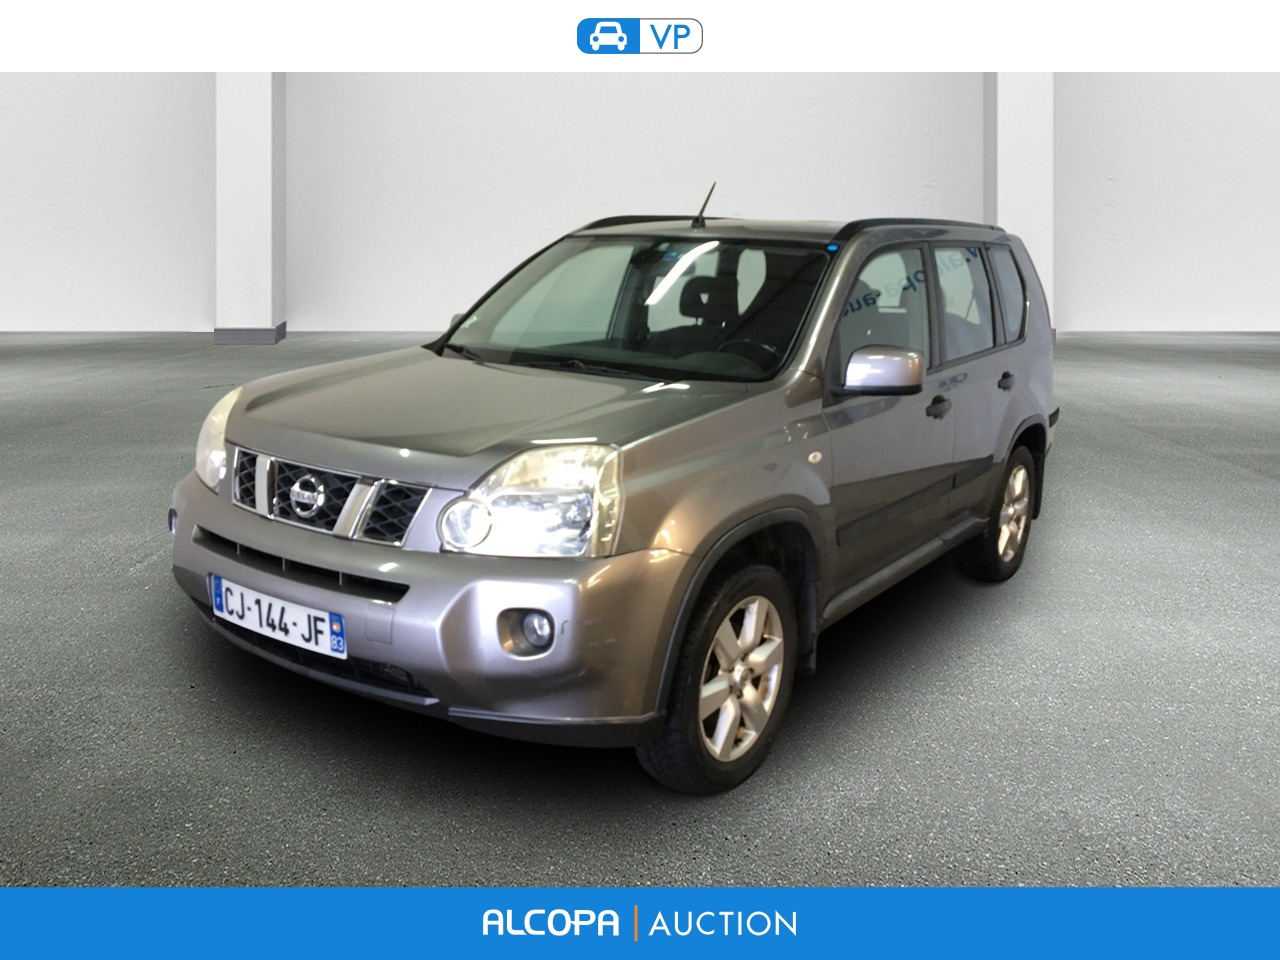 nissan x trail 07 2007 10 2010 x trail 2 0 dci 173 4x4 se alcopa auction. Black Bedroom Furniture Sets. Home Design Ideas